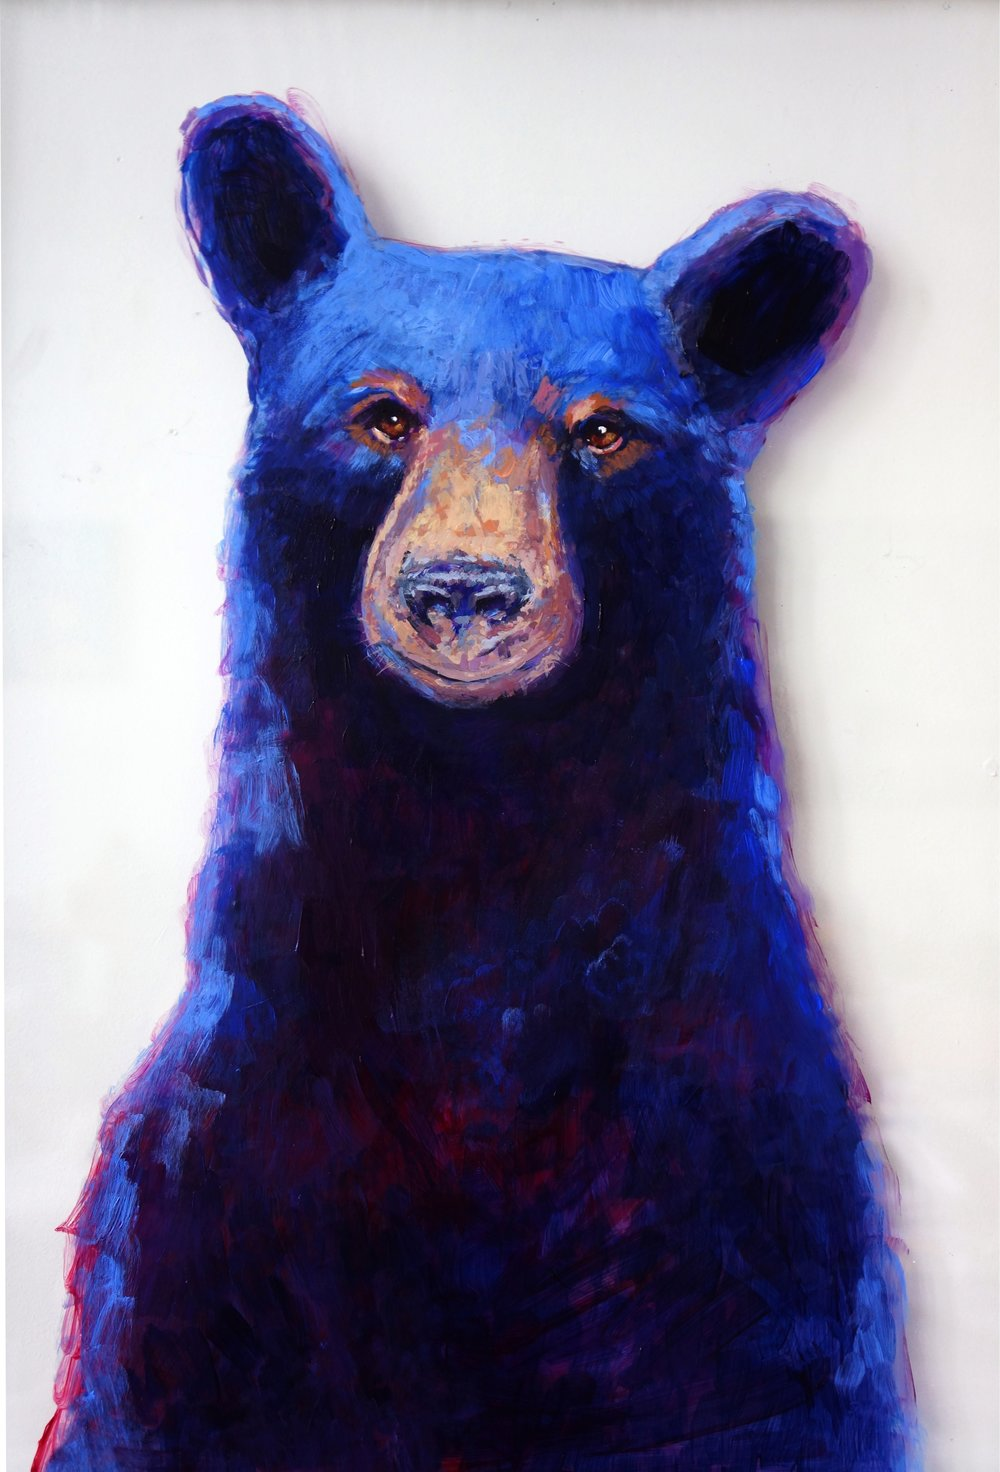 Black Bear on glass for someone special's birthday ;)